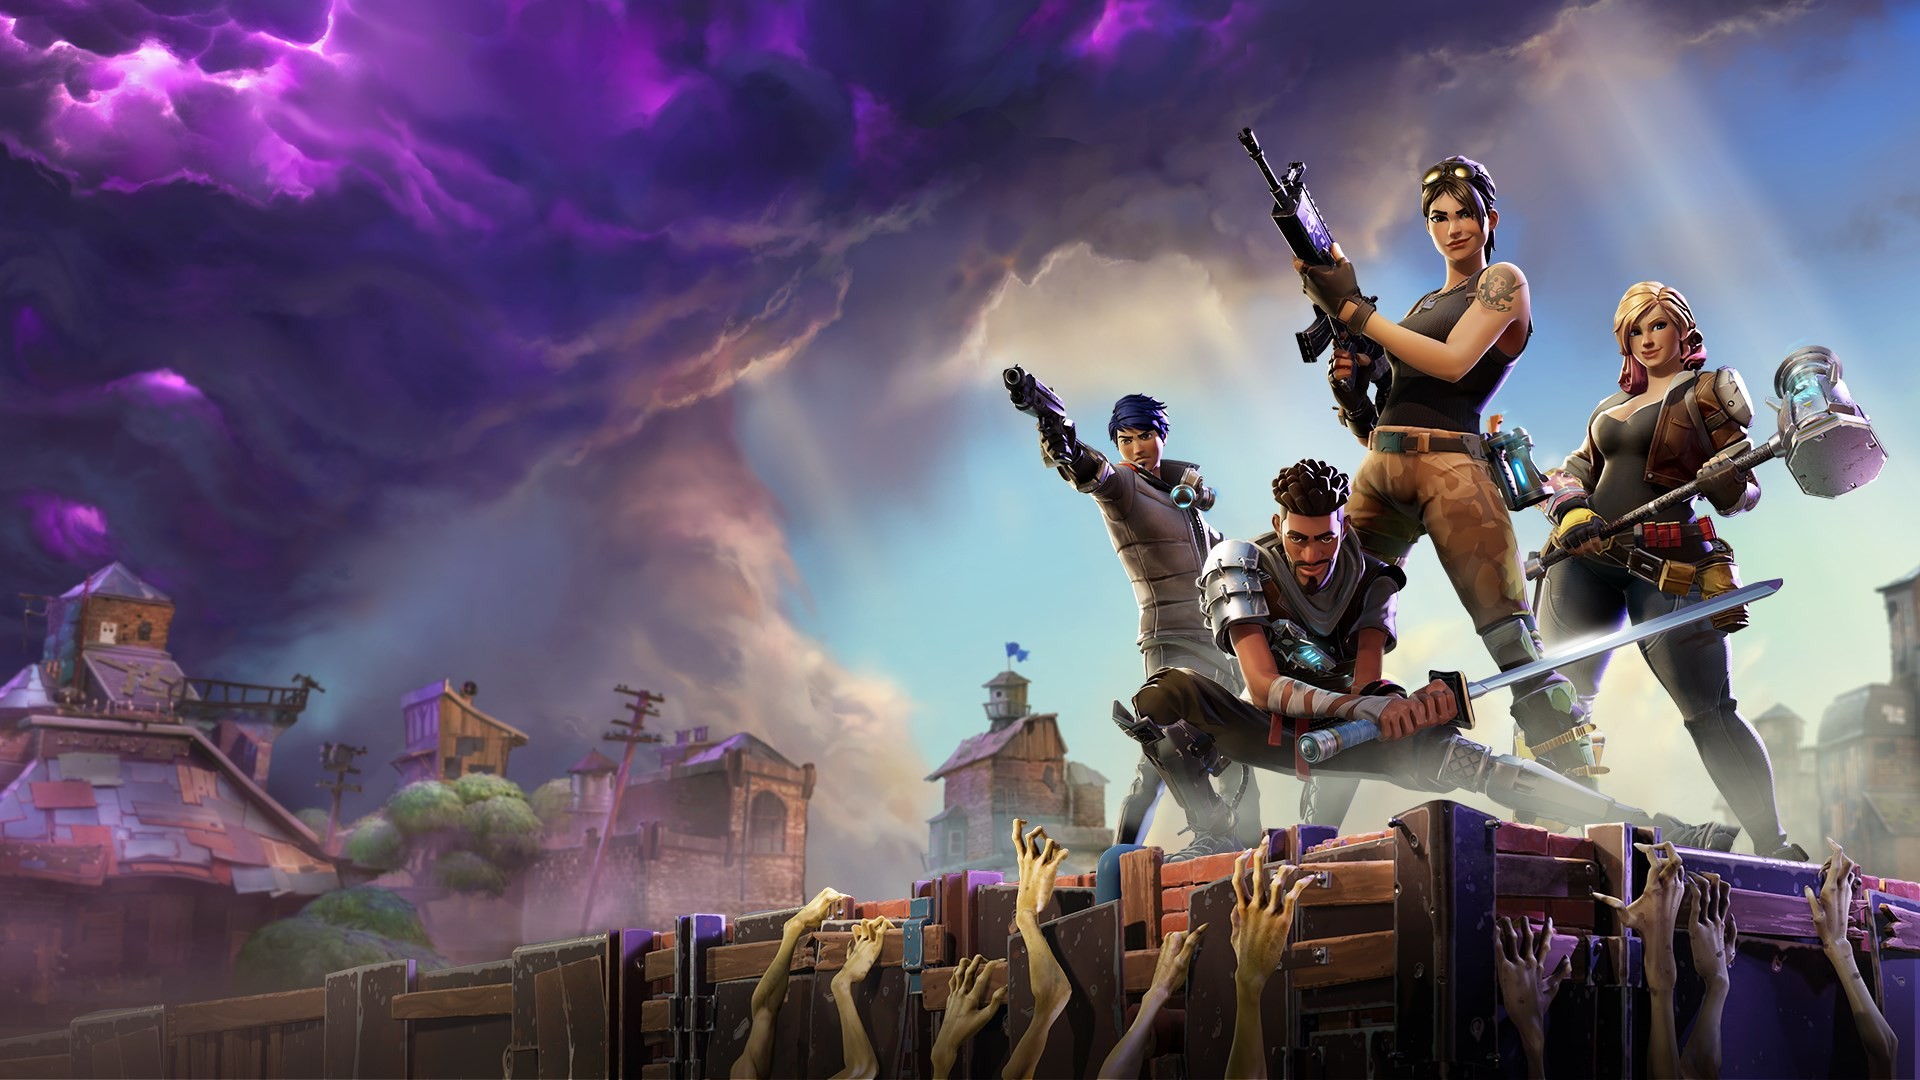 Fortnite - Standard to Deluxe Upgrade